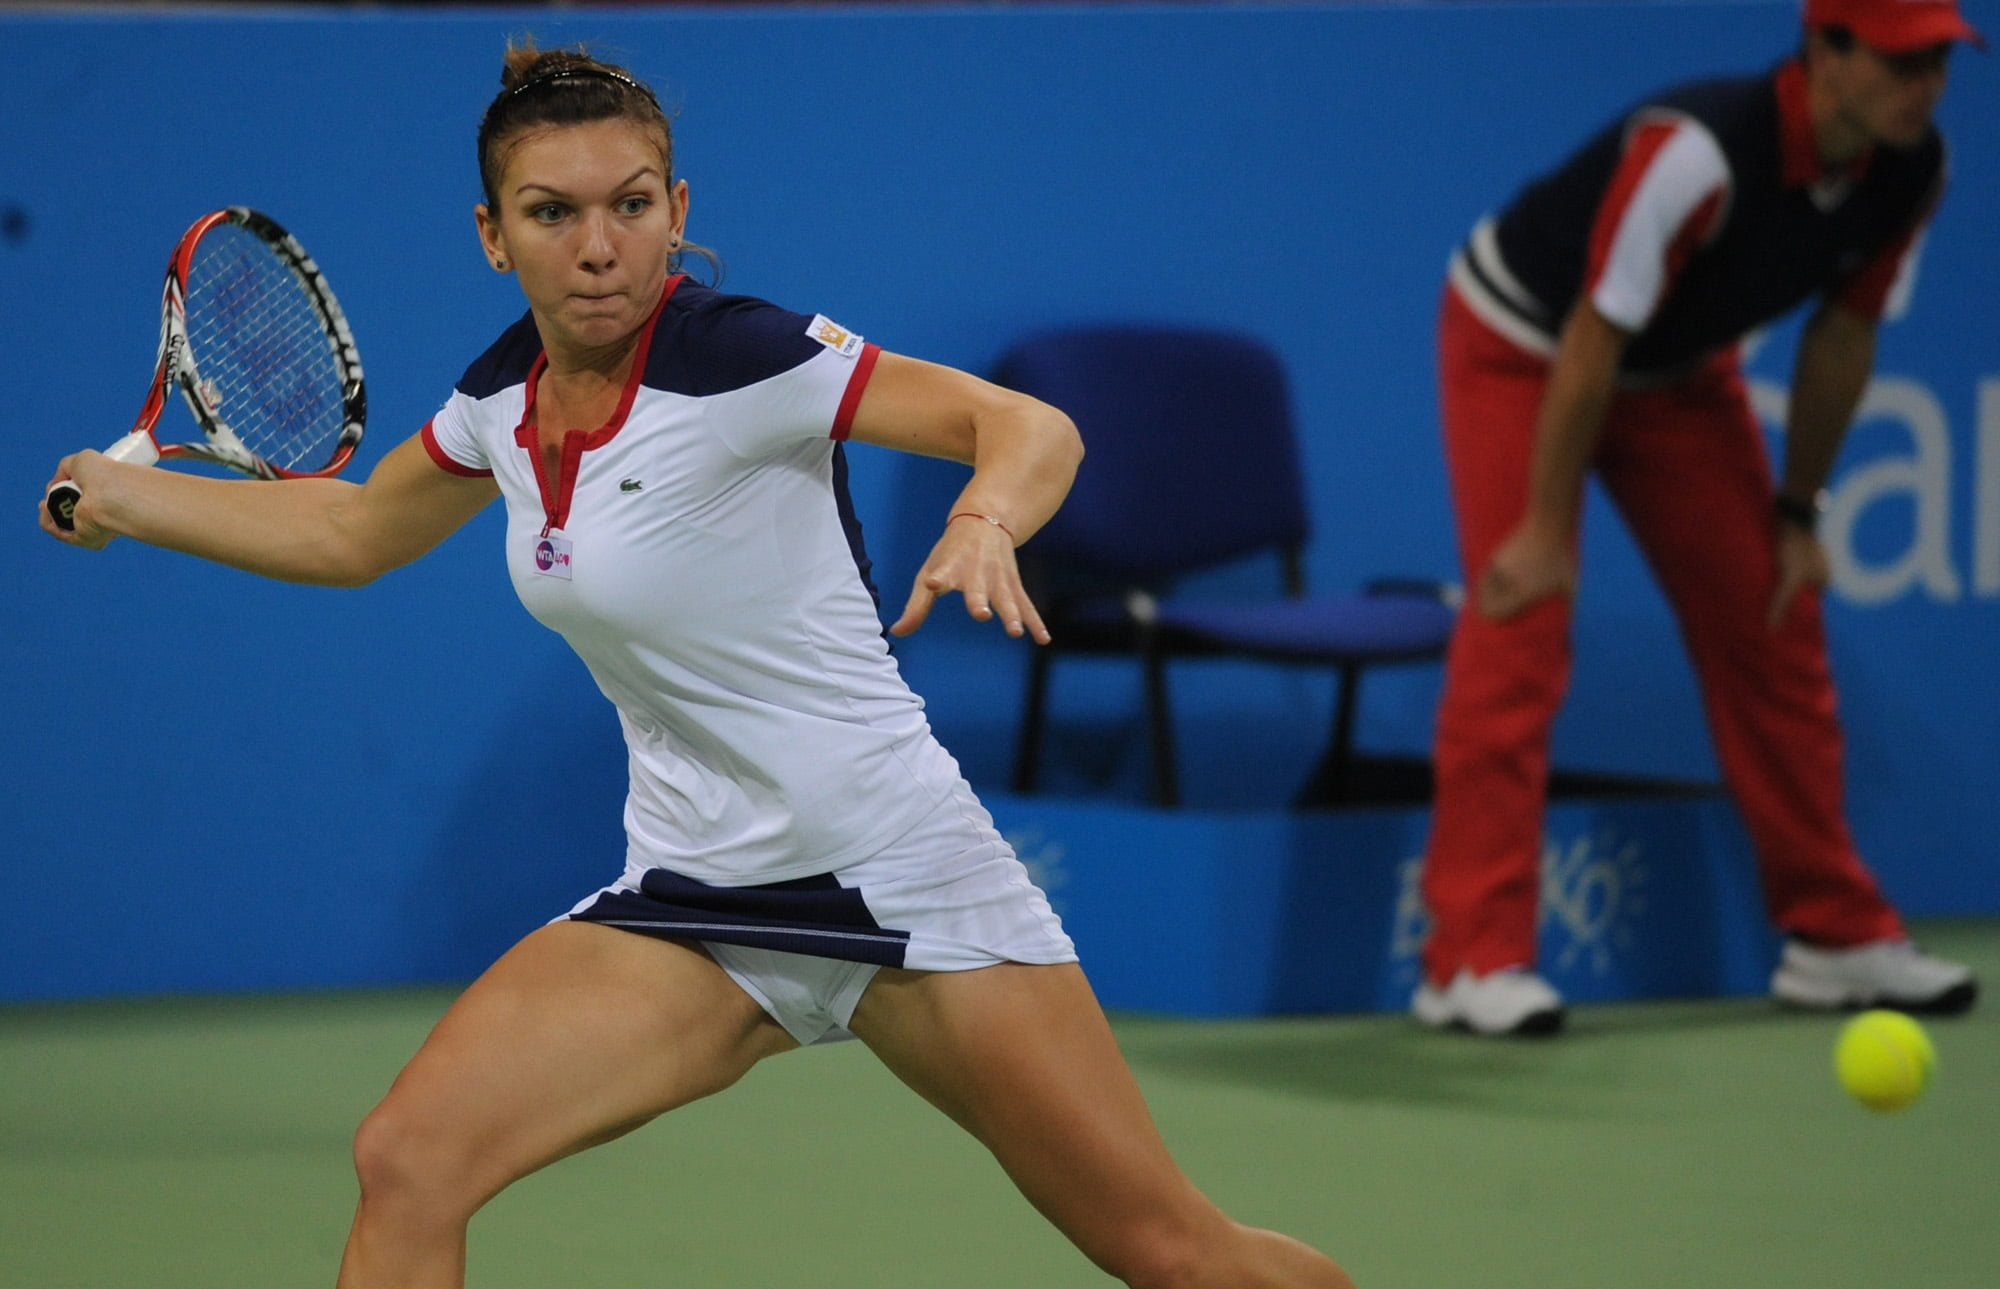 Simona Halep: Tennis player who had breast reduction ...